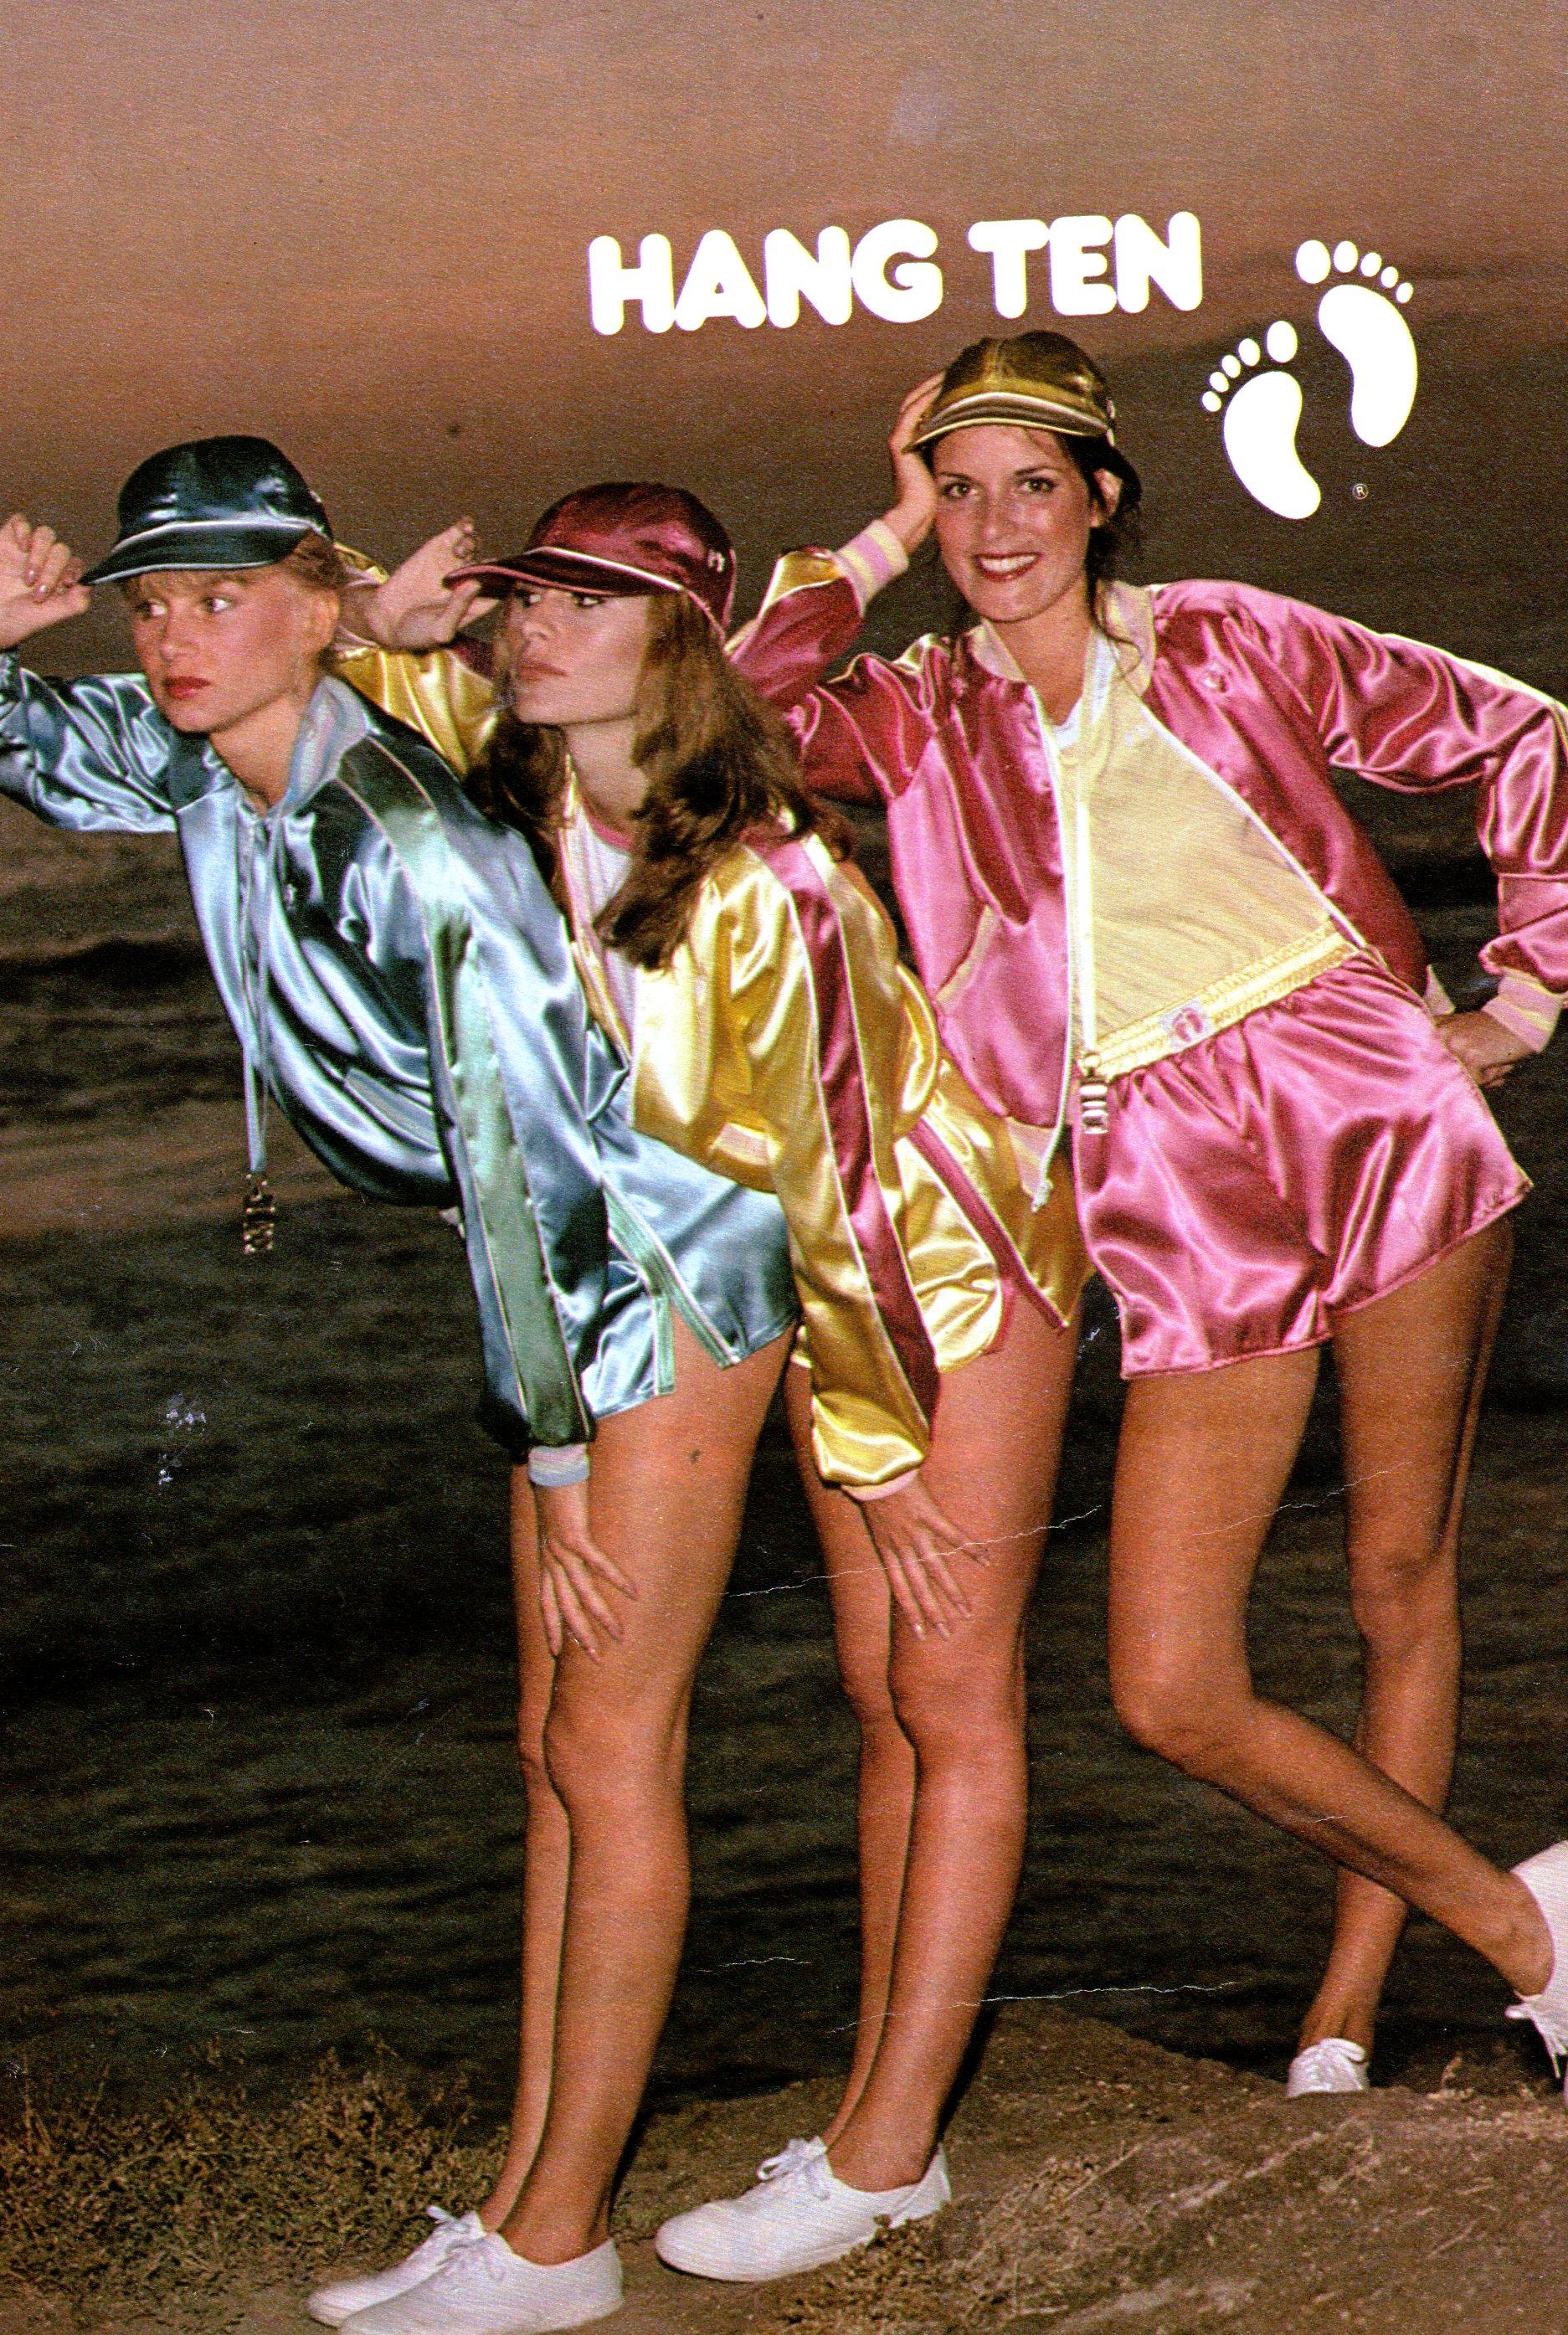 Hang Ten Ad From 1979 I Loved These Satin Jackets As A -2755